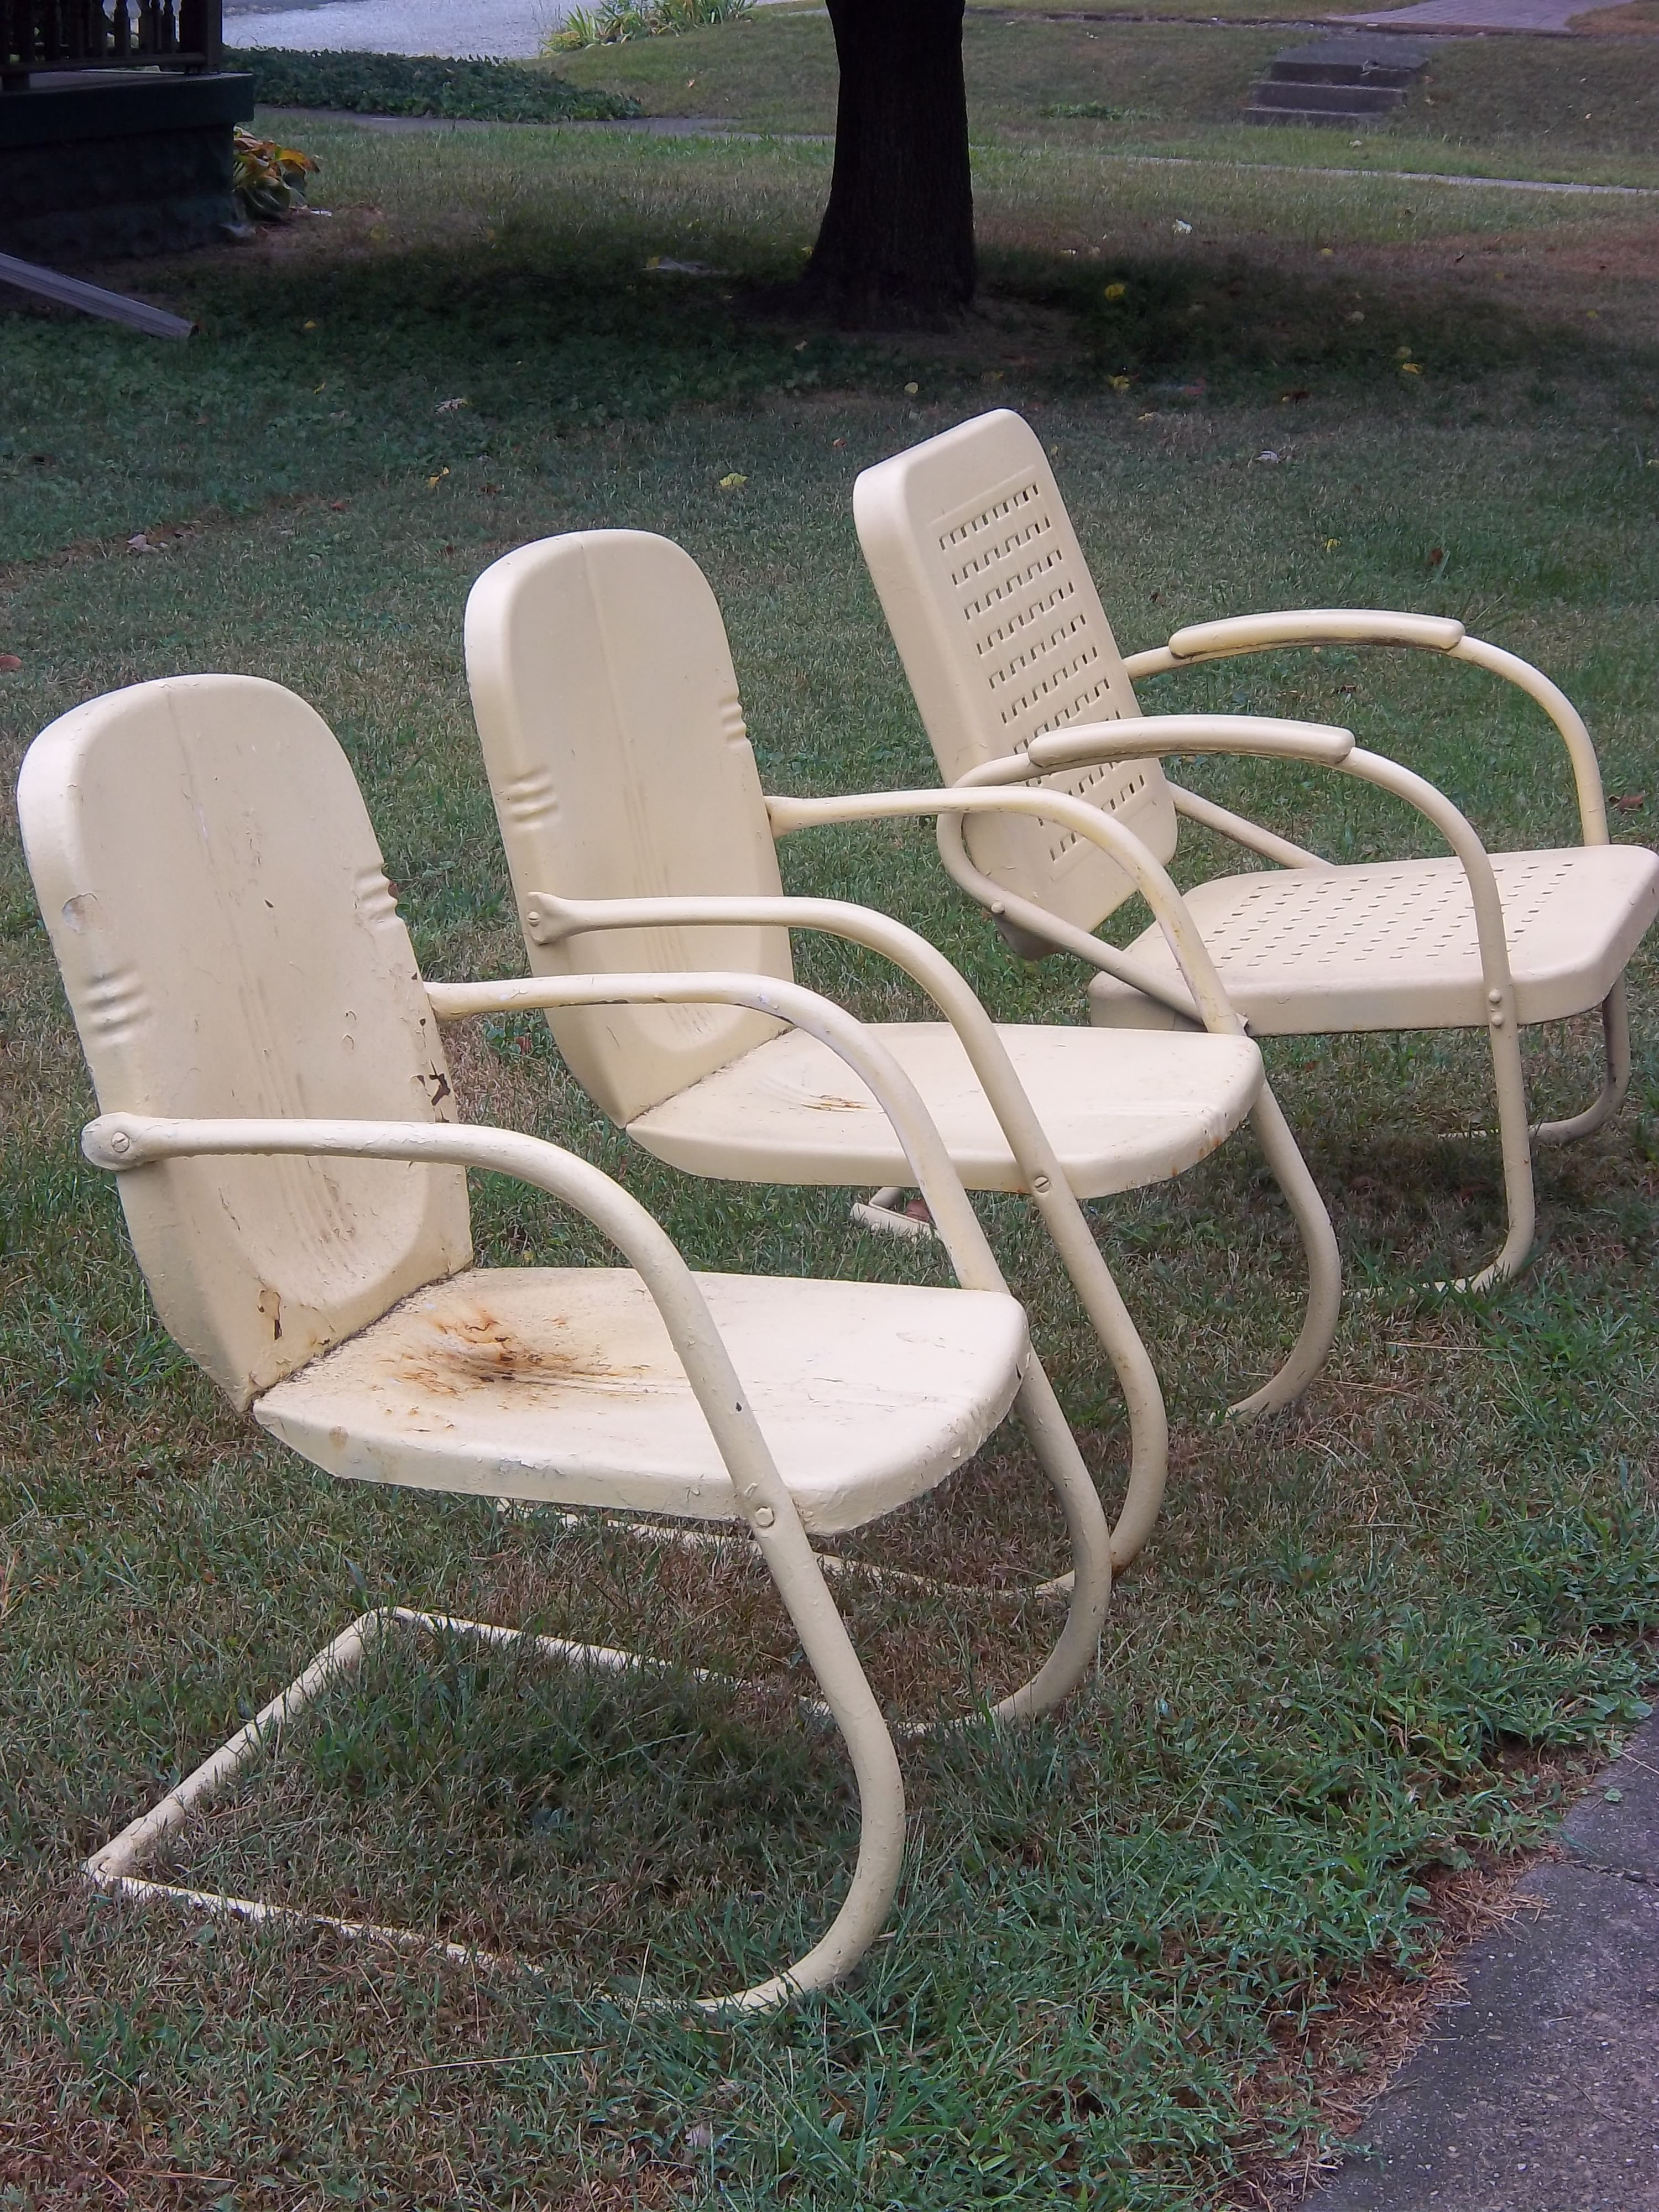 my vintage metal chairs home and garden vintage metal chairs rh pinterest com